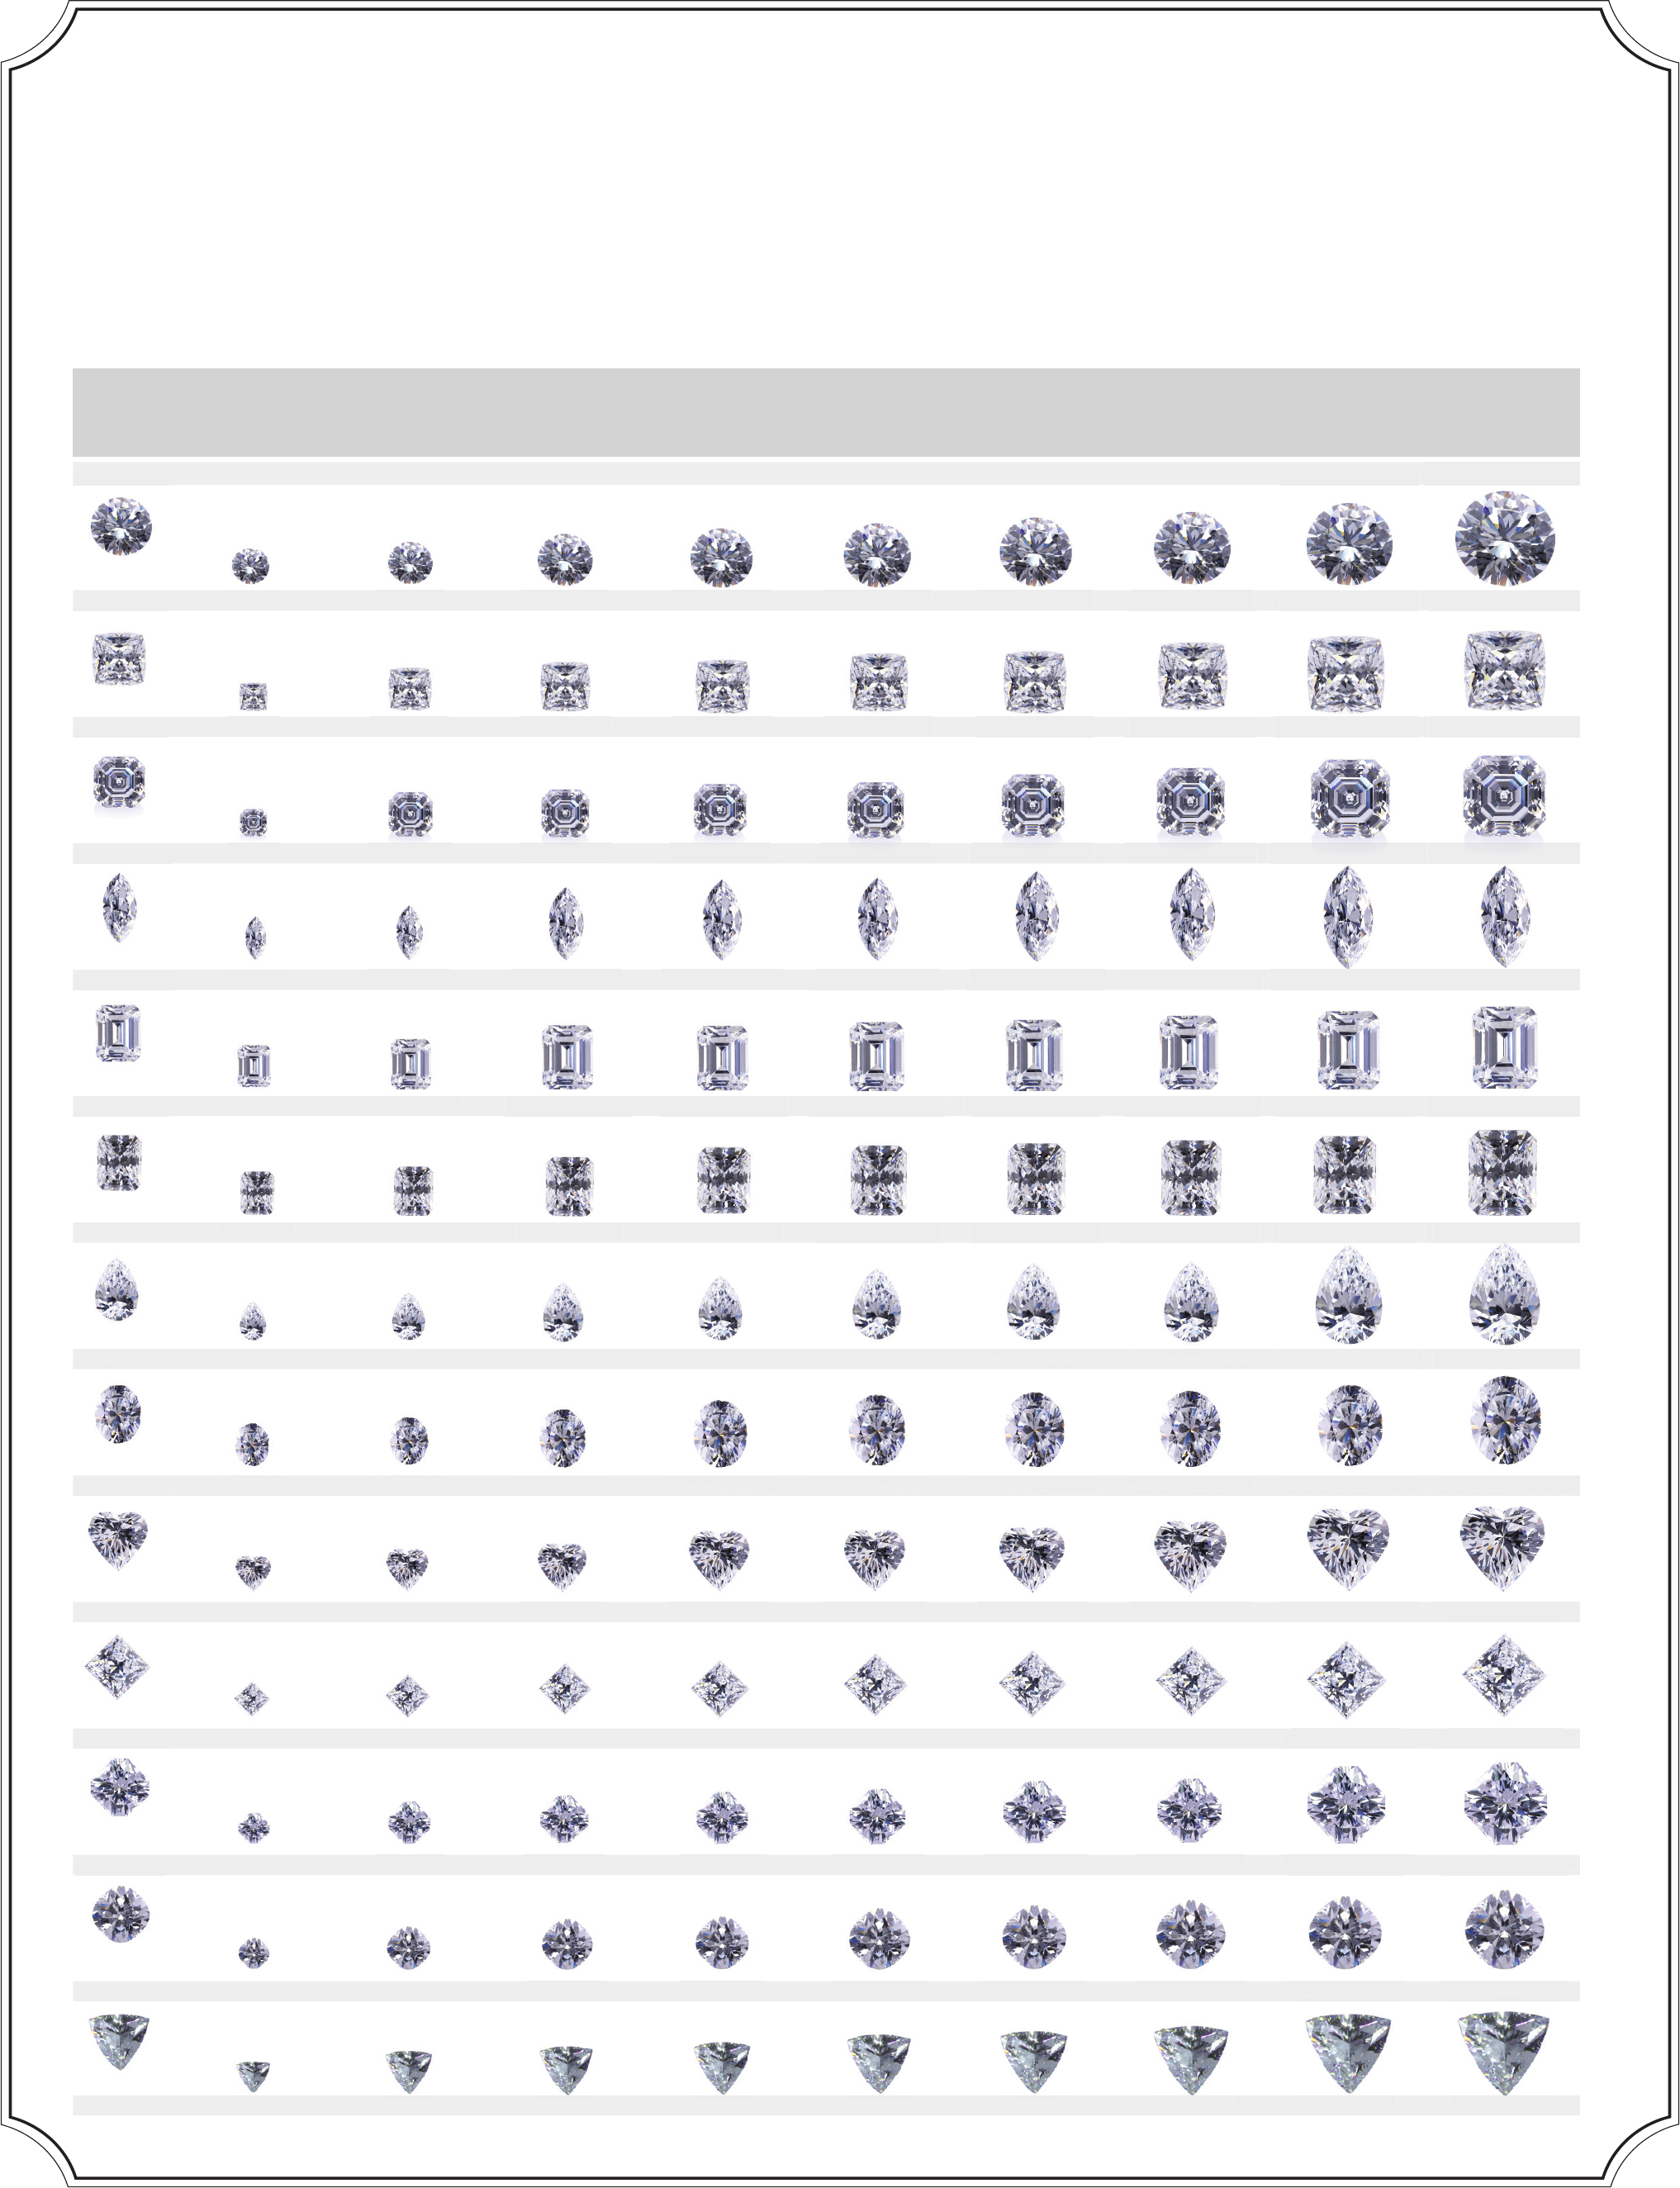 Actual Diamond Size Chart Free Download – Diamond Size Chart Template